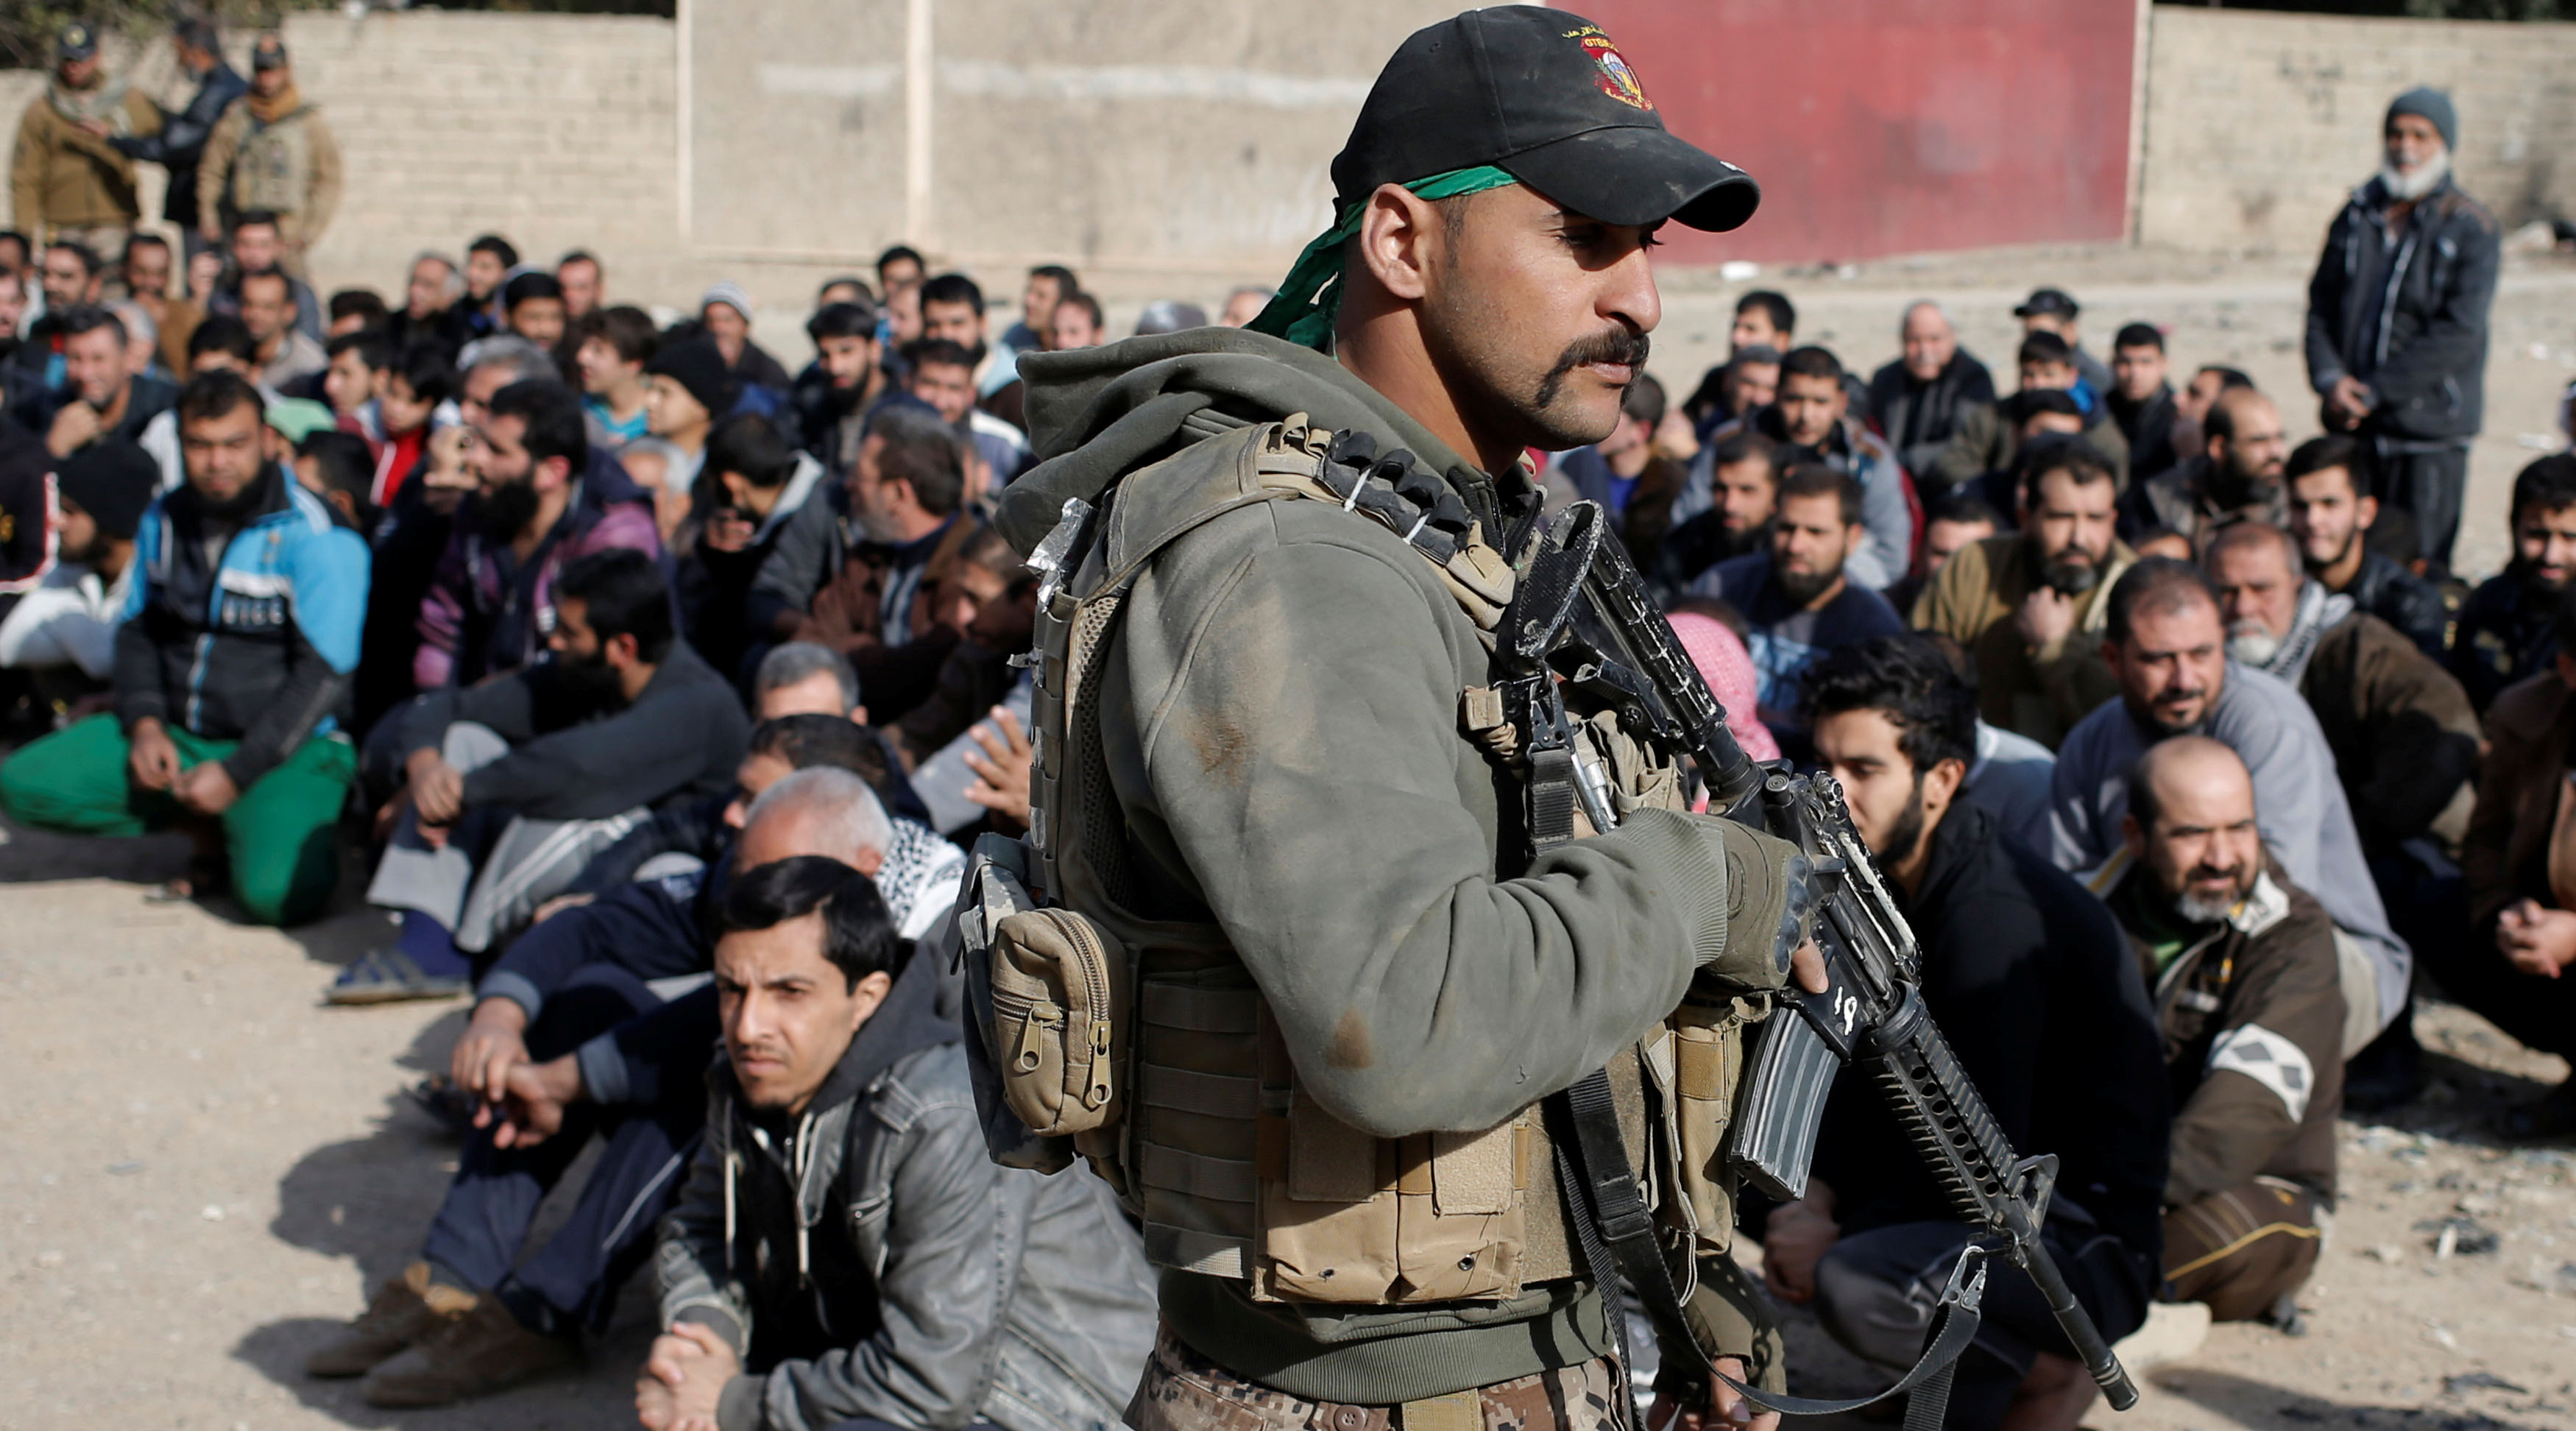 Iraqi special forces intelligence agents check men's IDs in the search for Islamic State fighters in Mosul, Iraq on Nov. 27.